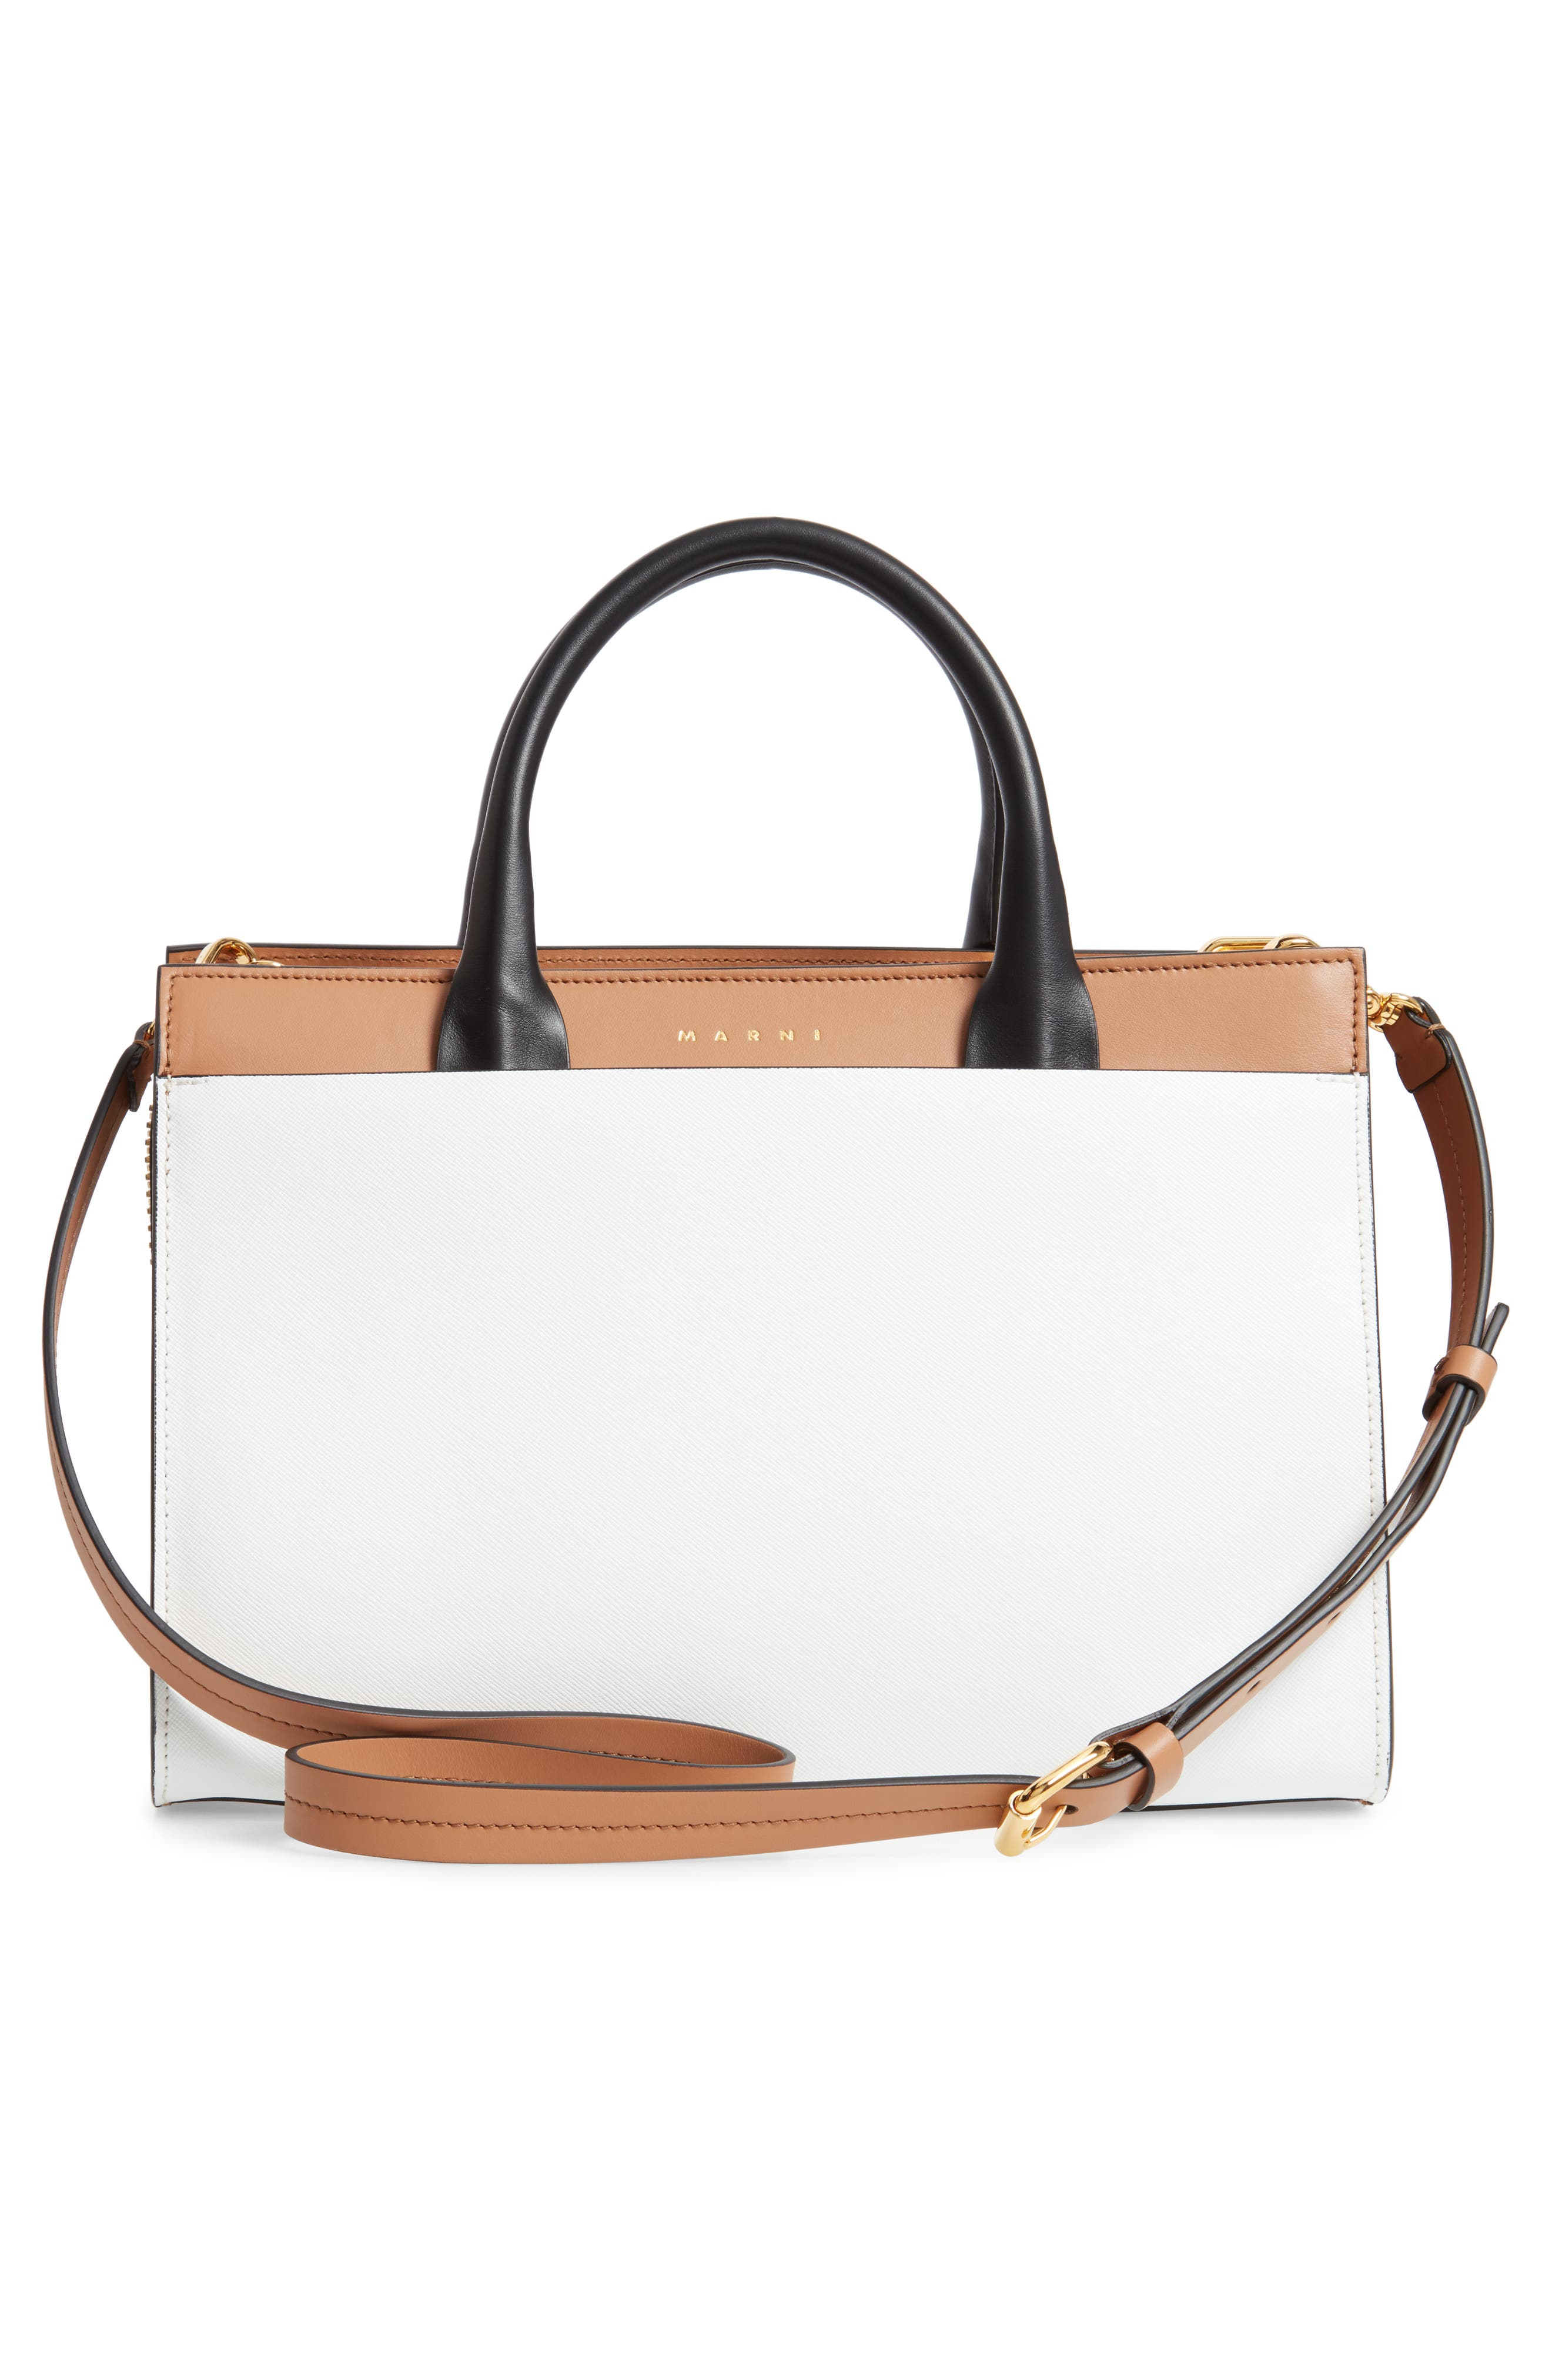 MARNI, Medium Law Colorblock Top Handle Satchel, Alternate thumbnail 3, color, POMPEII/ LIMESTONE/ BLACK